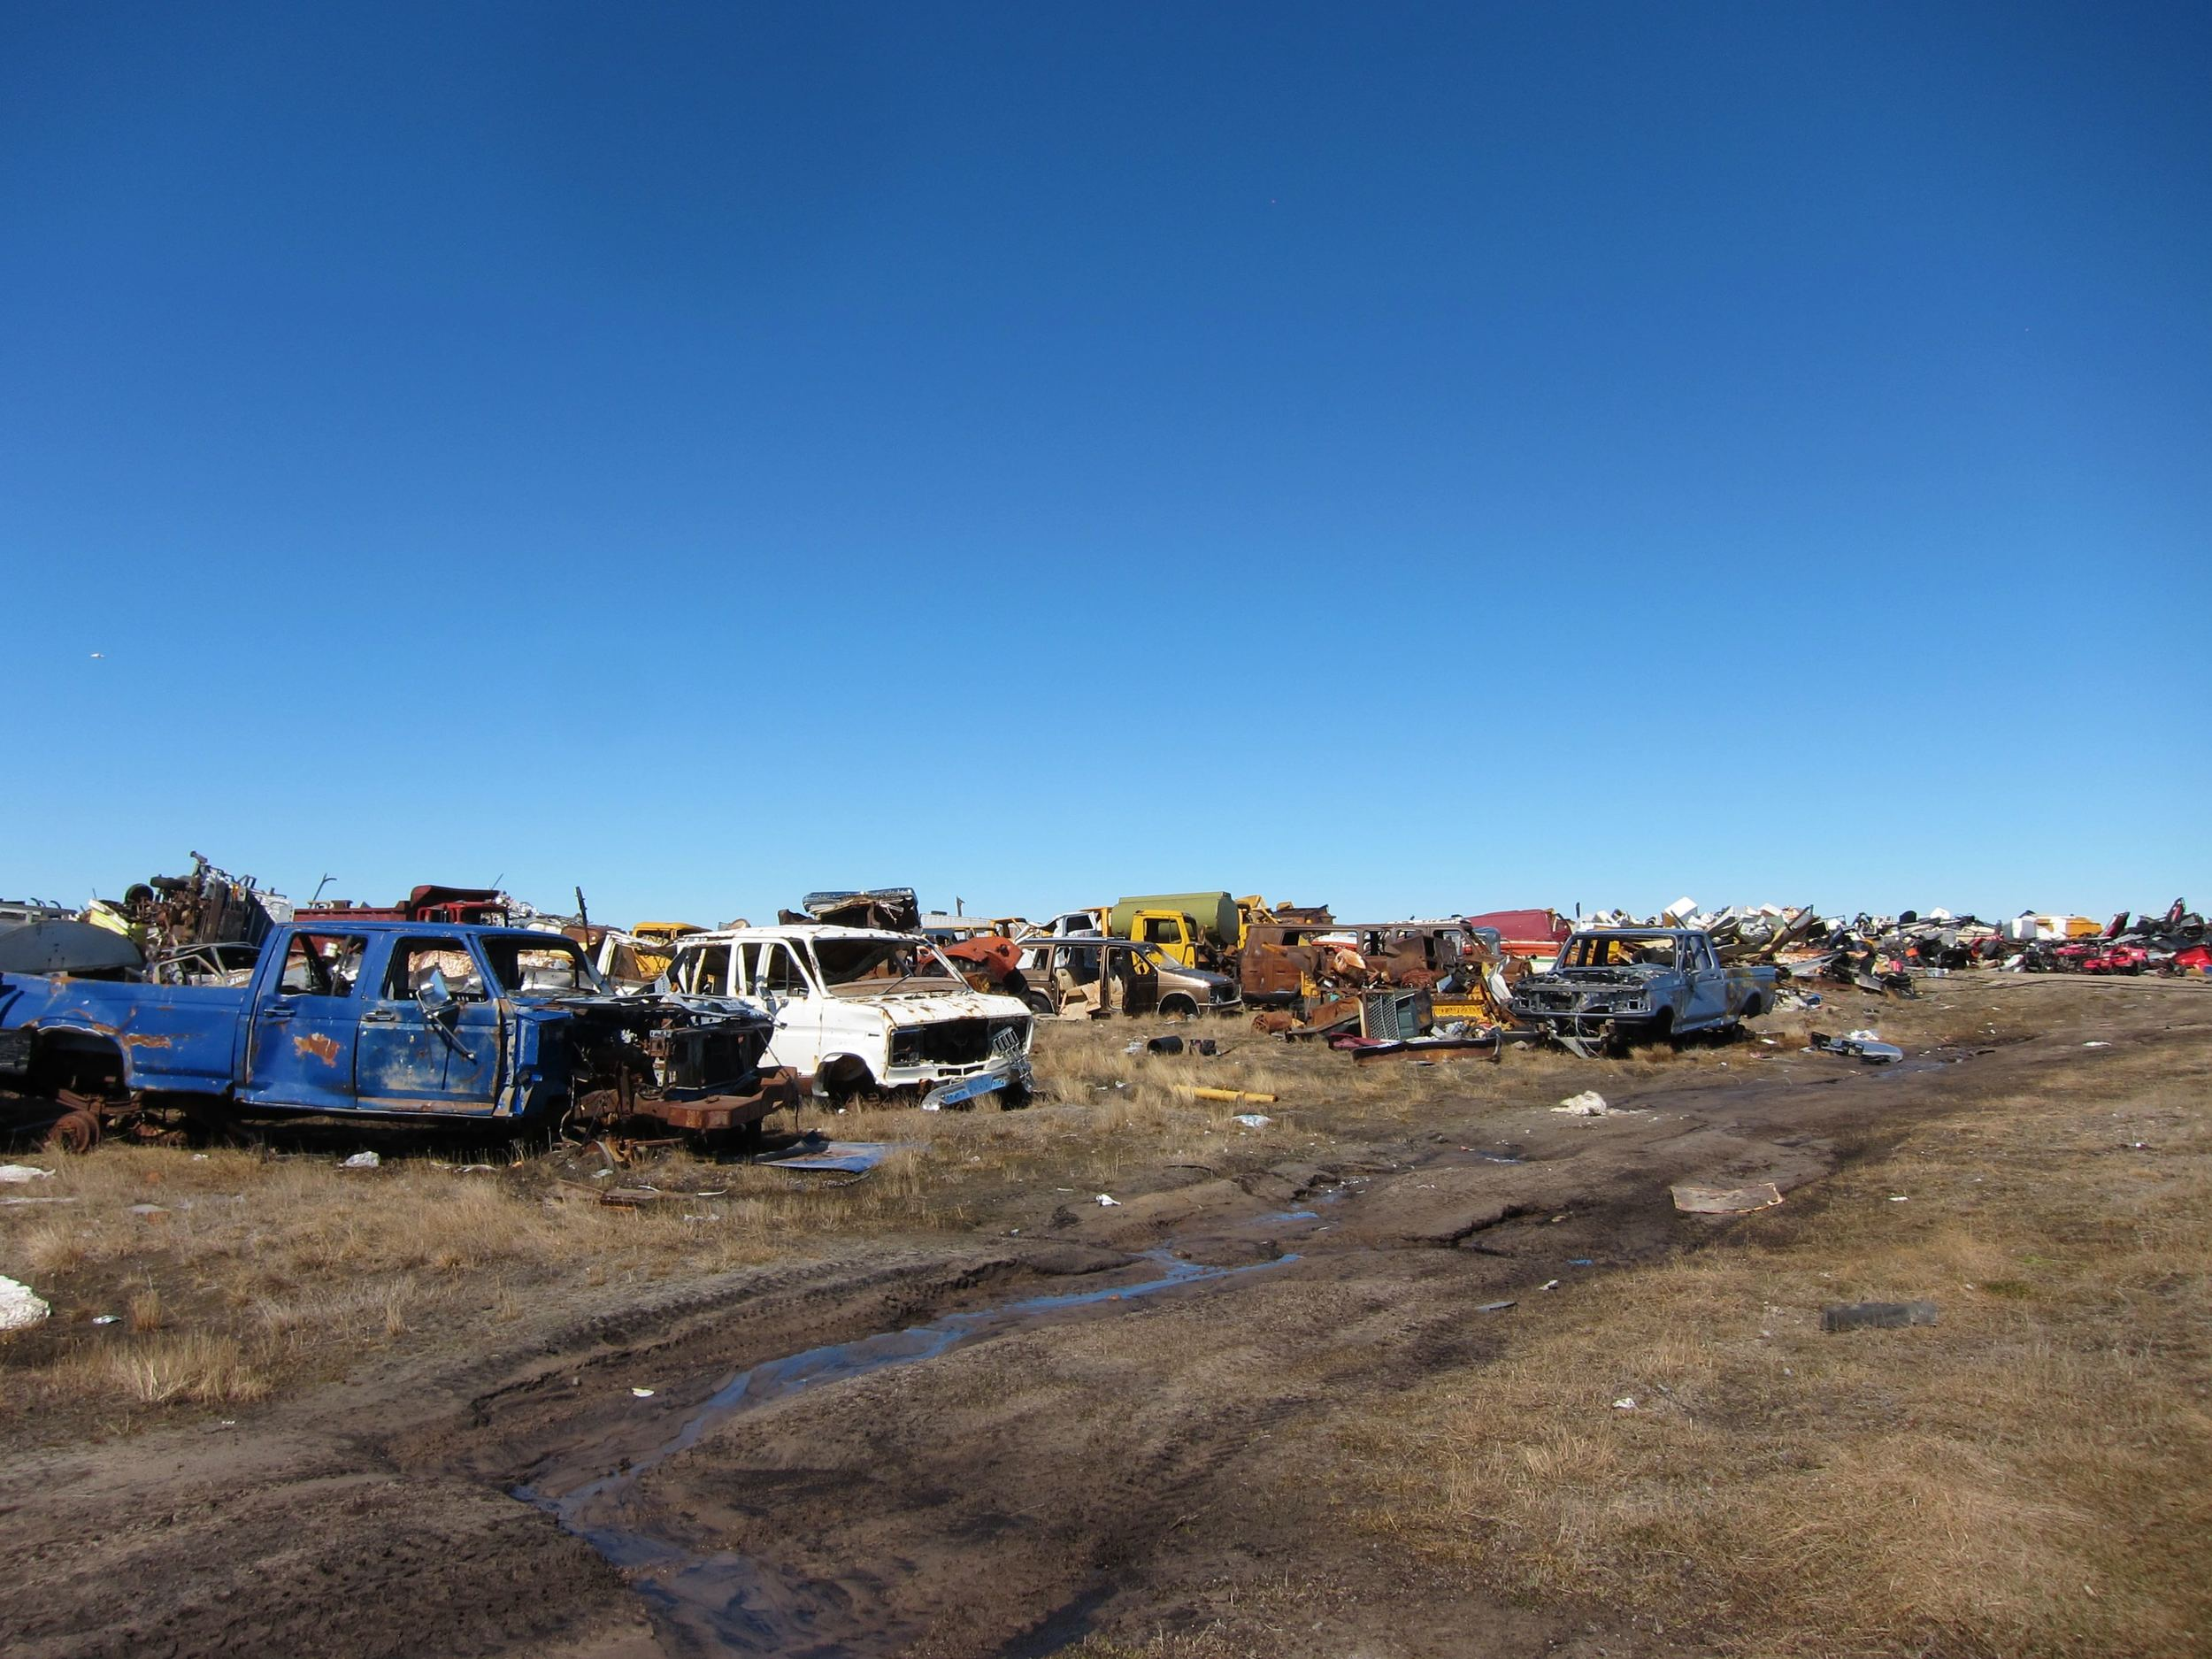 End-of-life vehicles in Gjoa Haven, June 2014. Photo courtesy of Tundra Take-Back.